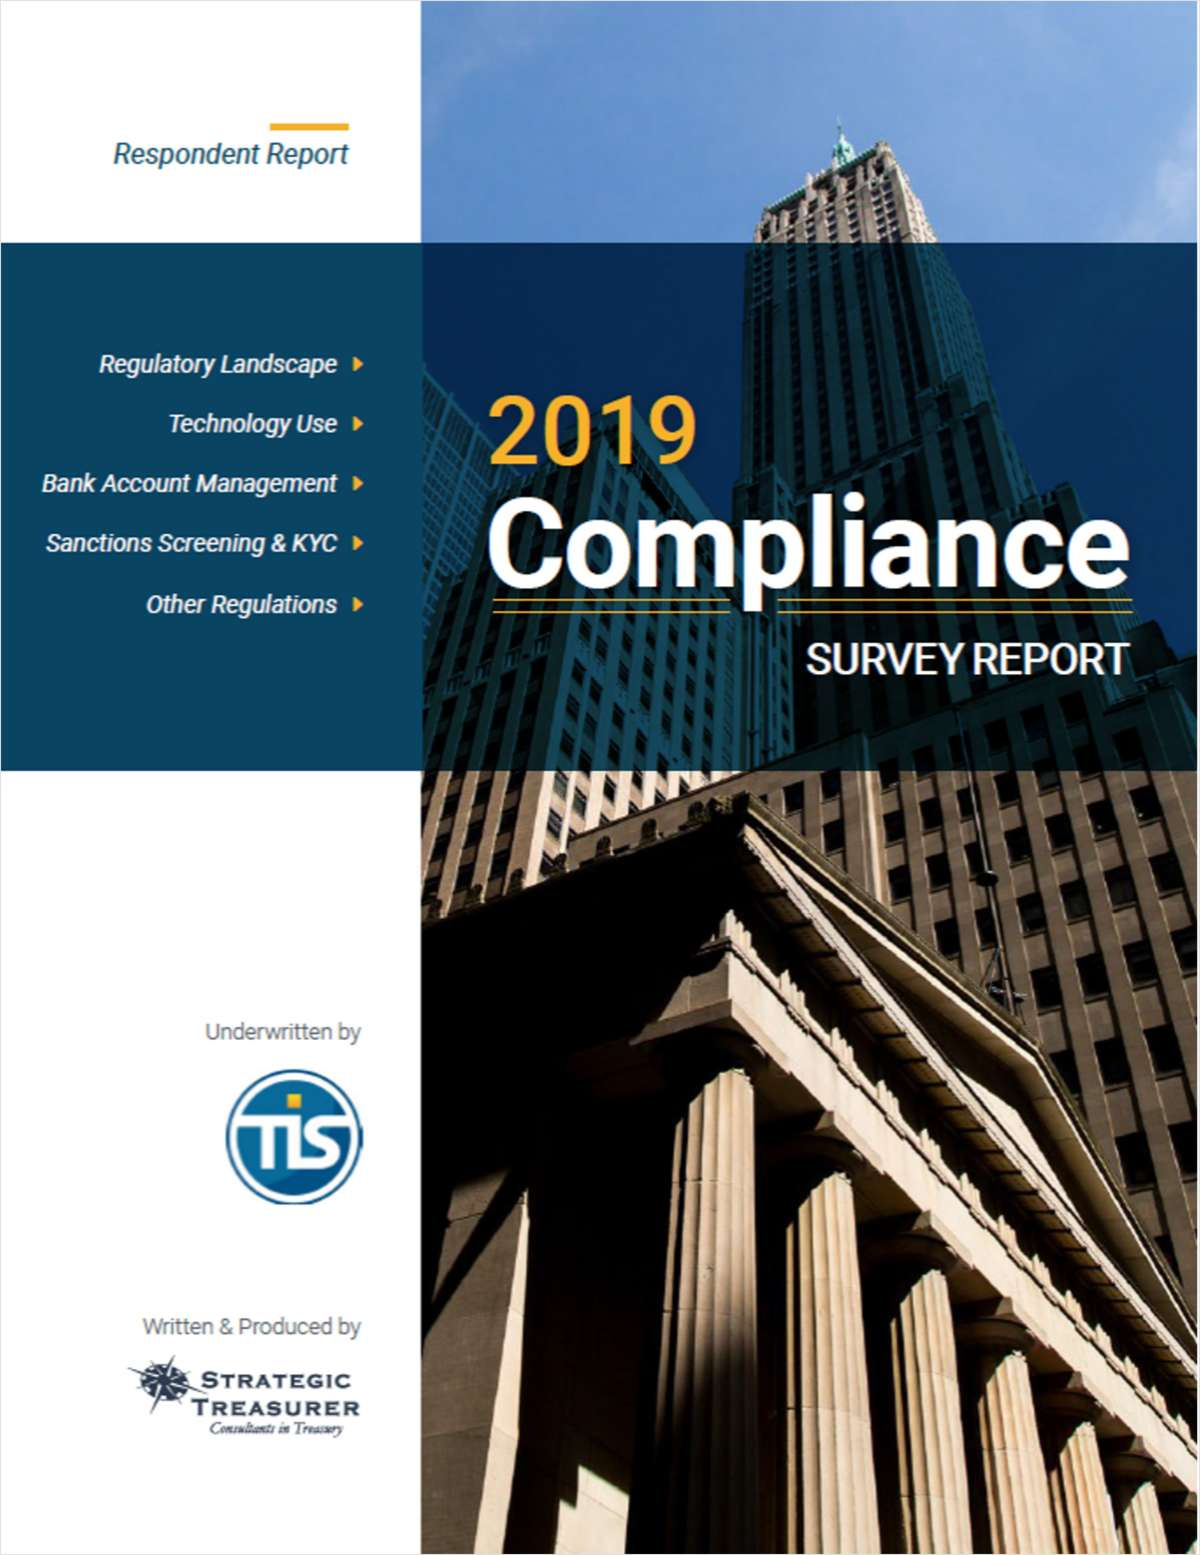 2019 Compliance Survey Report